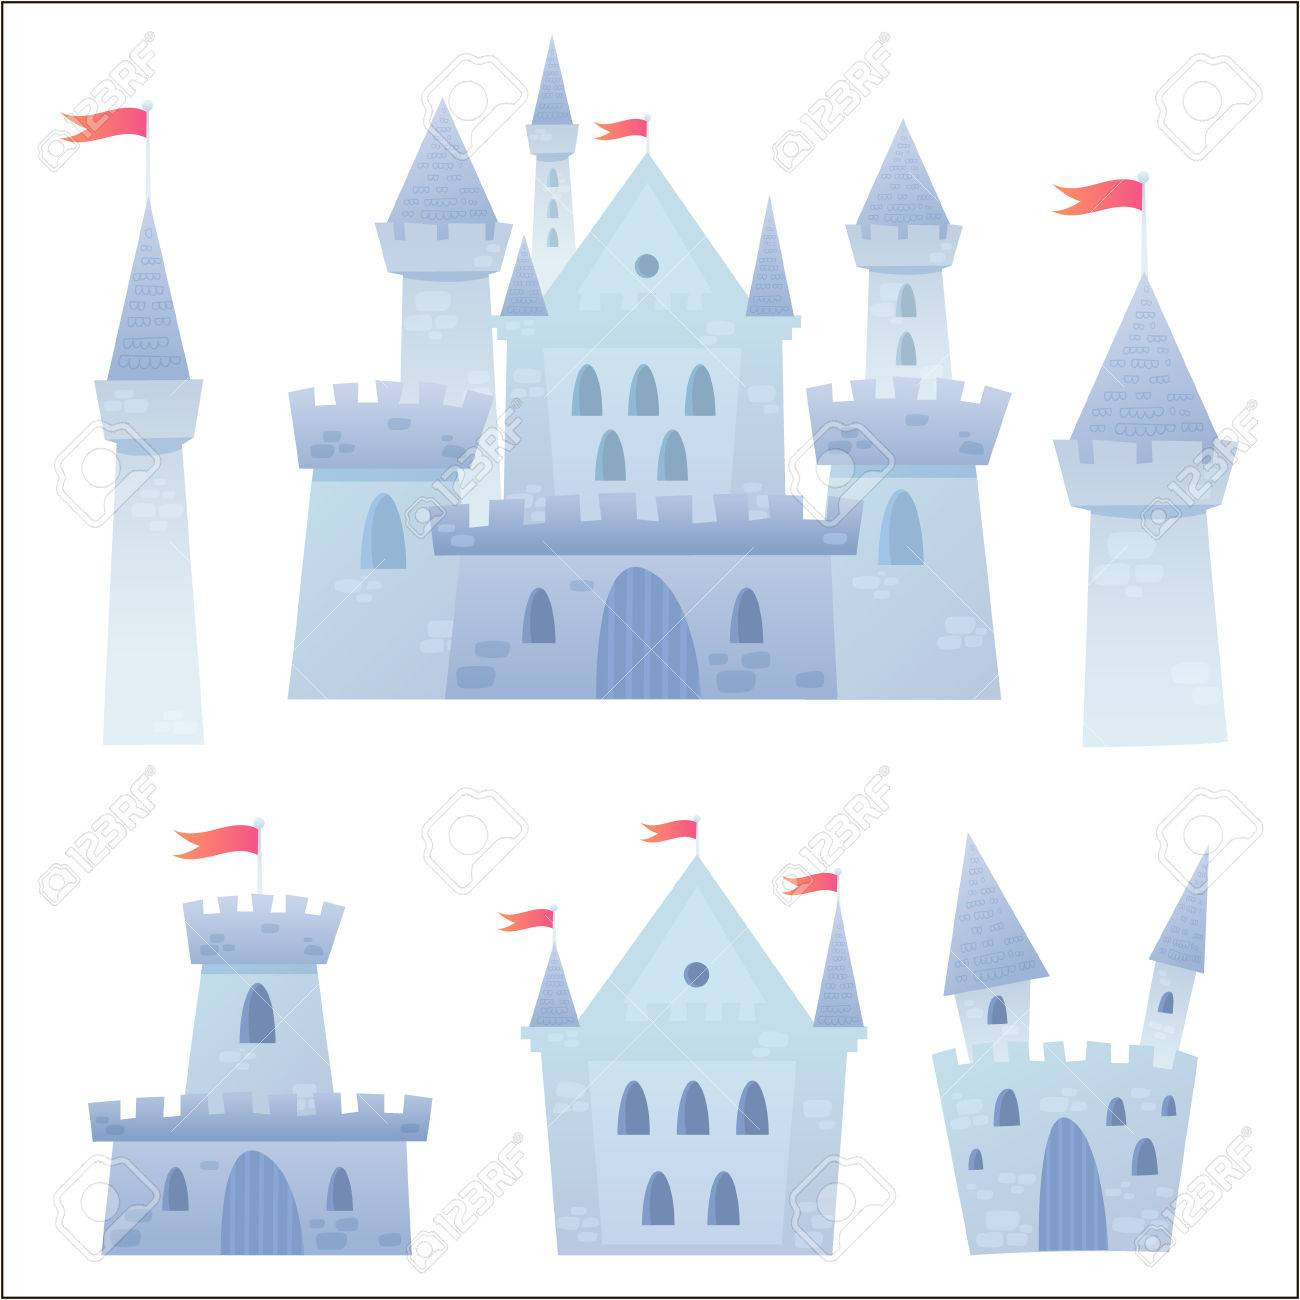 Cute cartoon vector medieval castle with fortress and set of towers - 29262770